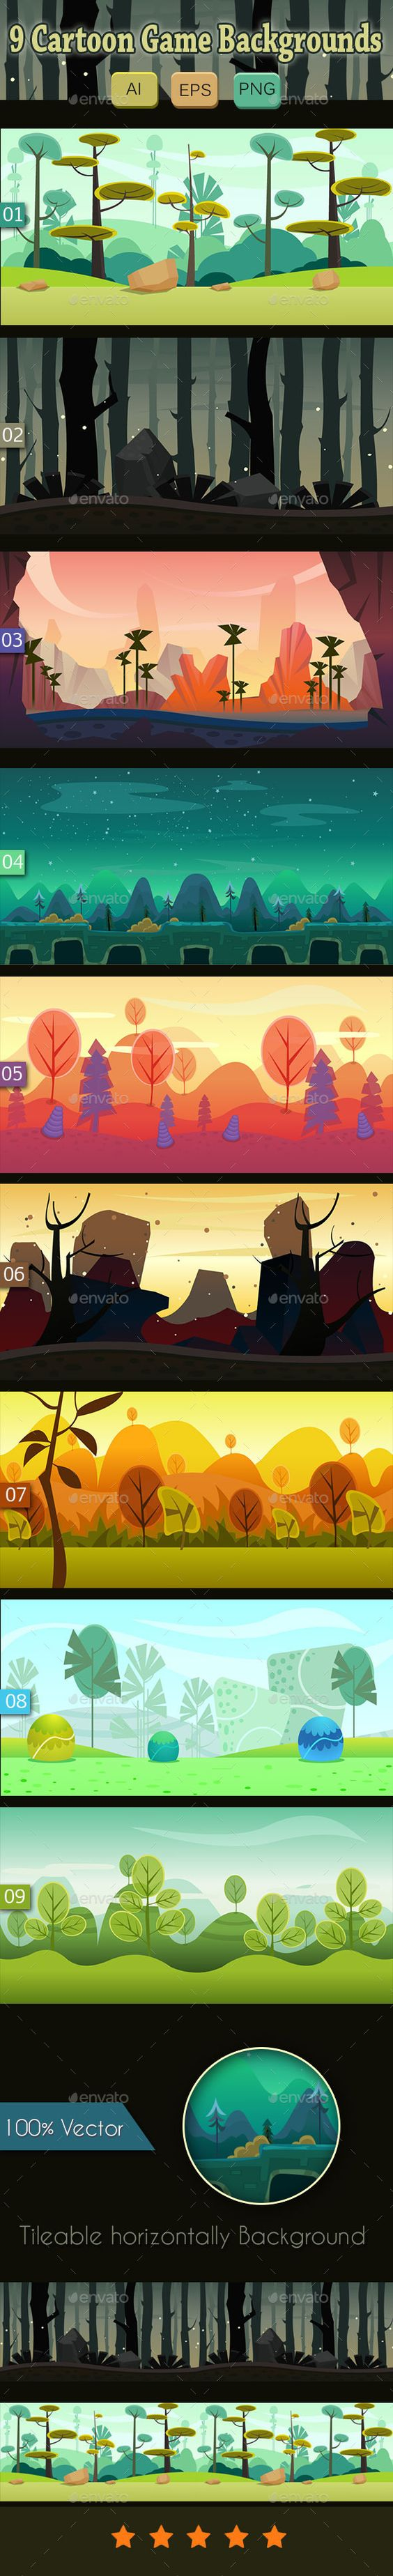 9 Cartoon Game Backgrounds - Backgrounds Game Assets